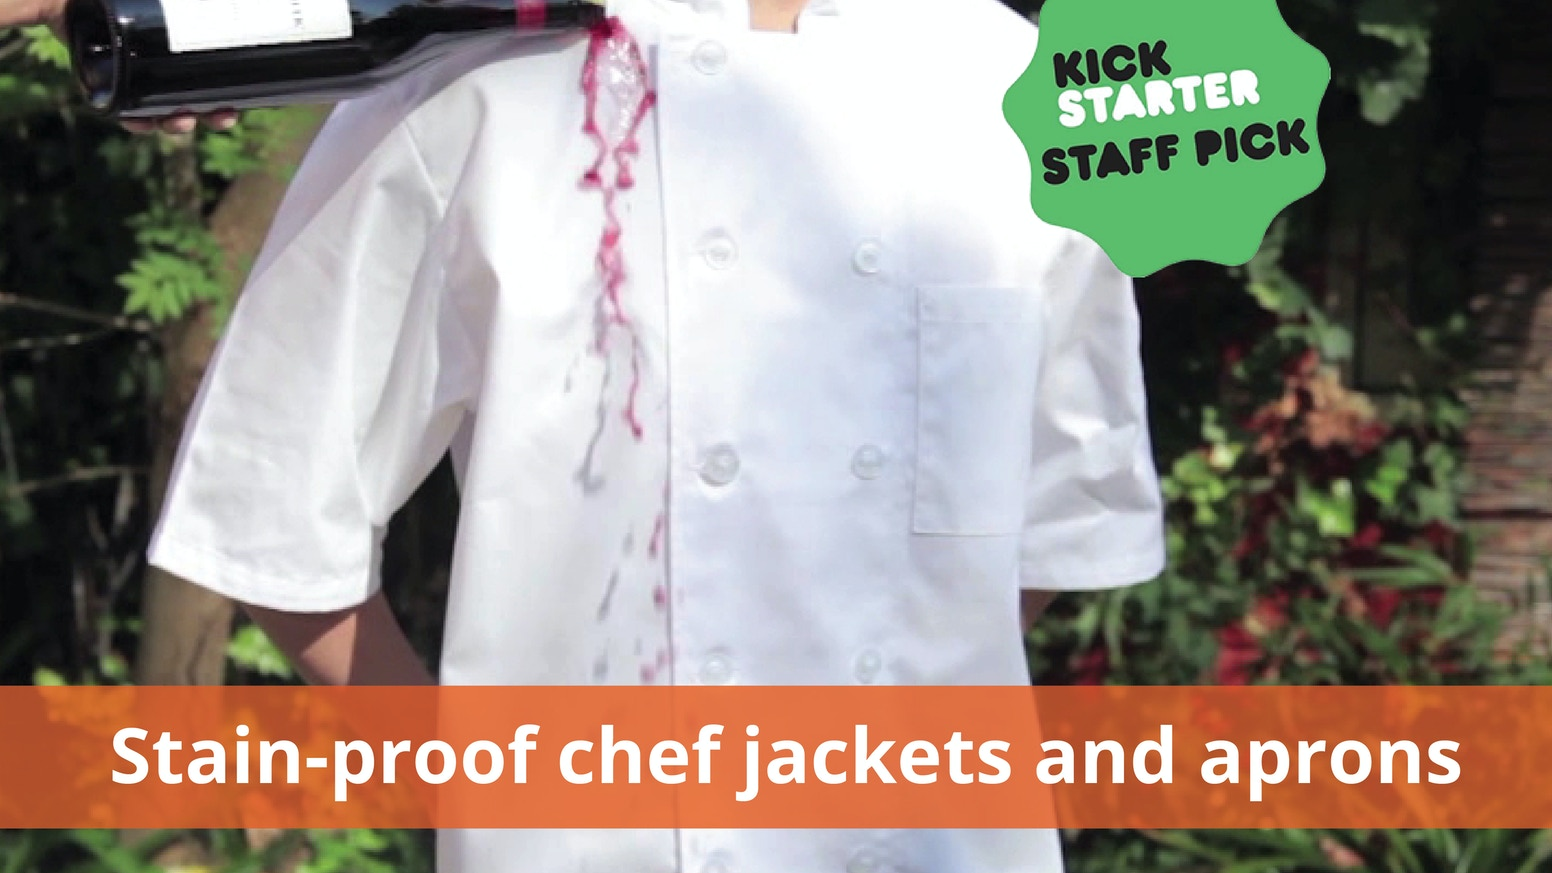 The world's most advanced chef jackets and aprons made hydrophobic.